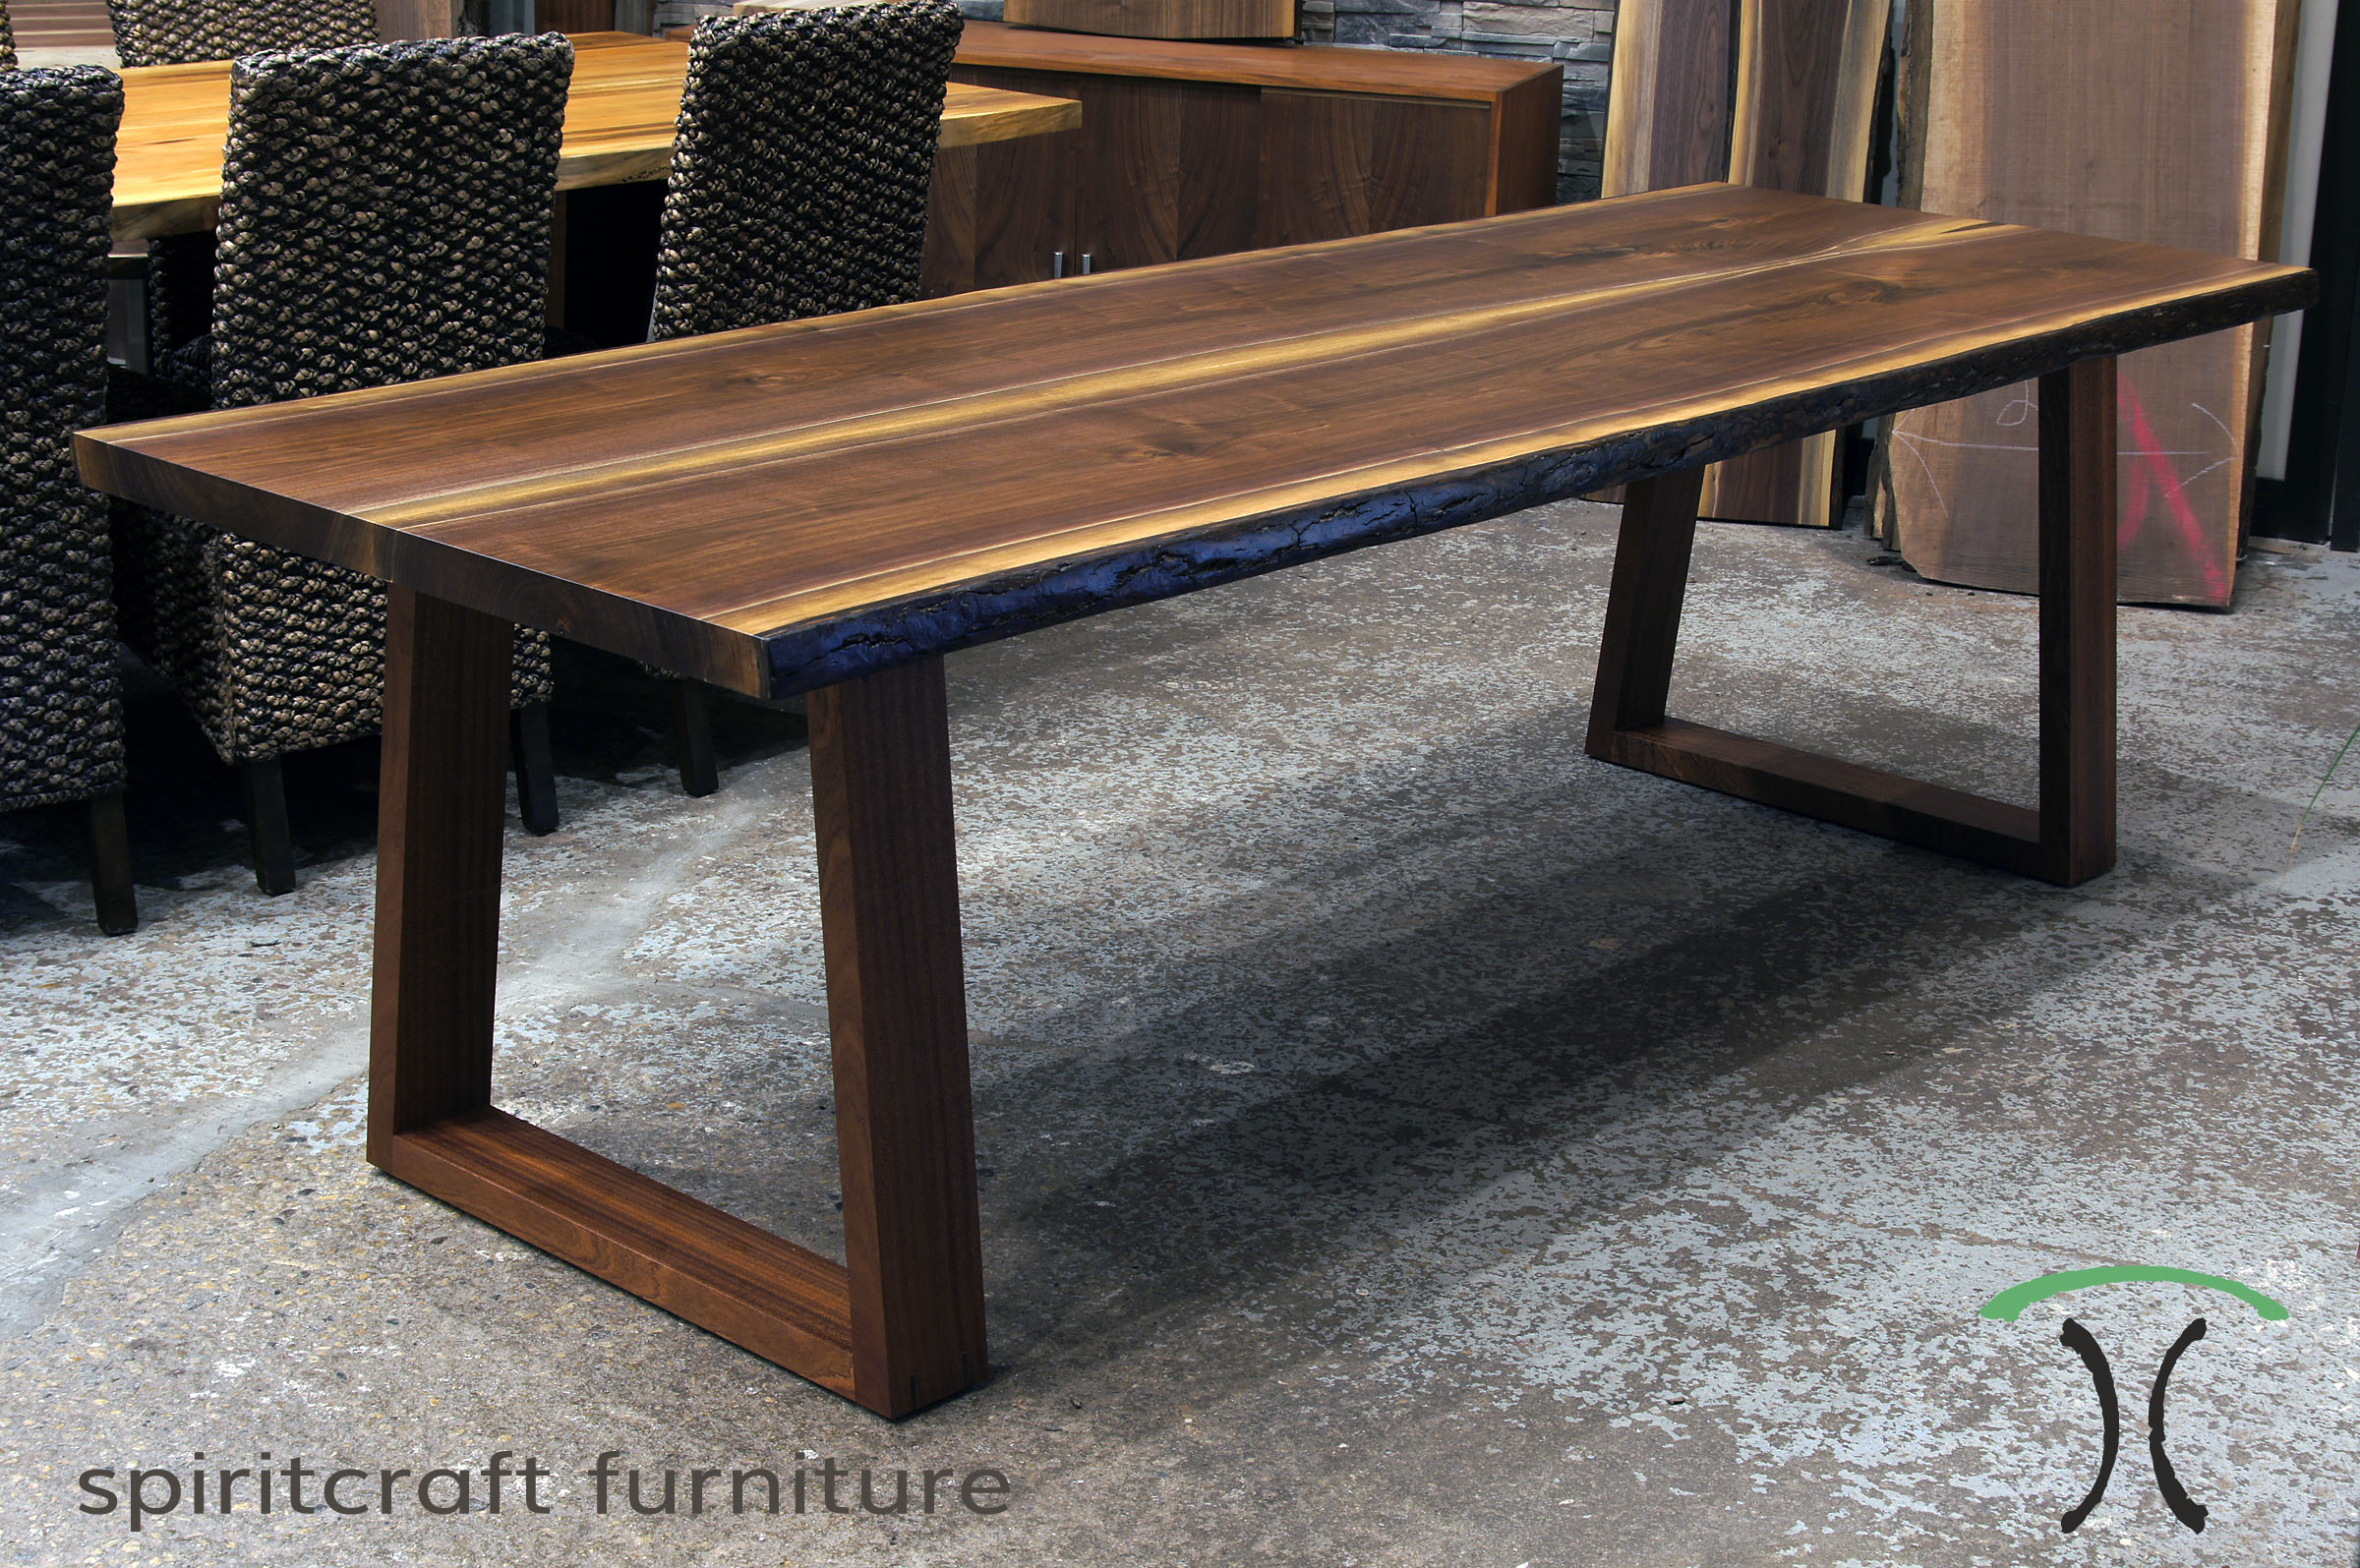 Black Walnut live edge dining table on inverted Sapele trapezoid legs at Living Edge Furniture Company in East Dundee, IL.